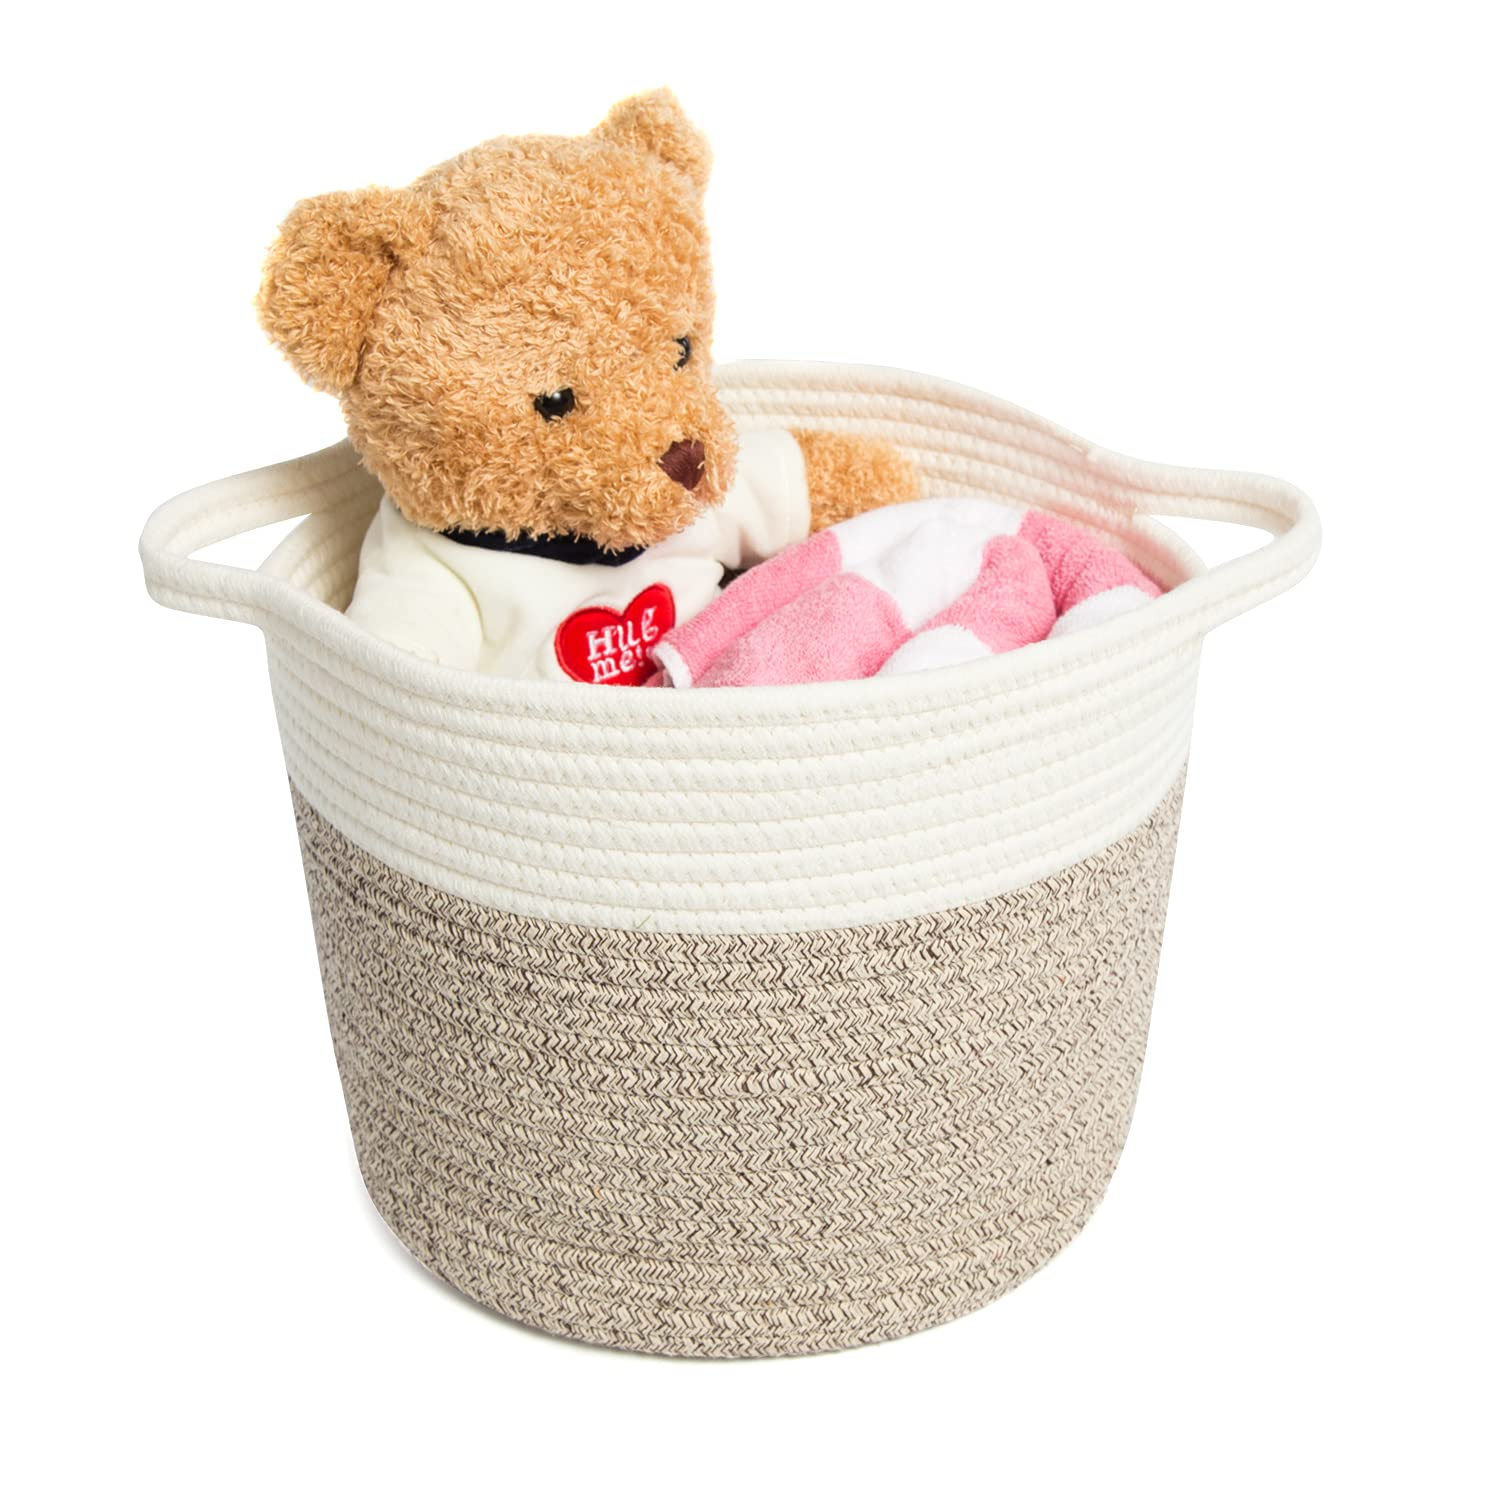 Cotton Rope Storage Basket Baby Laundry Baskets Woven Decorative Organizer for Blanket Kids Toys Towels Multifunctional Storage Bins with Handle Brown Size M